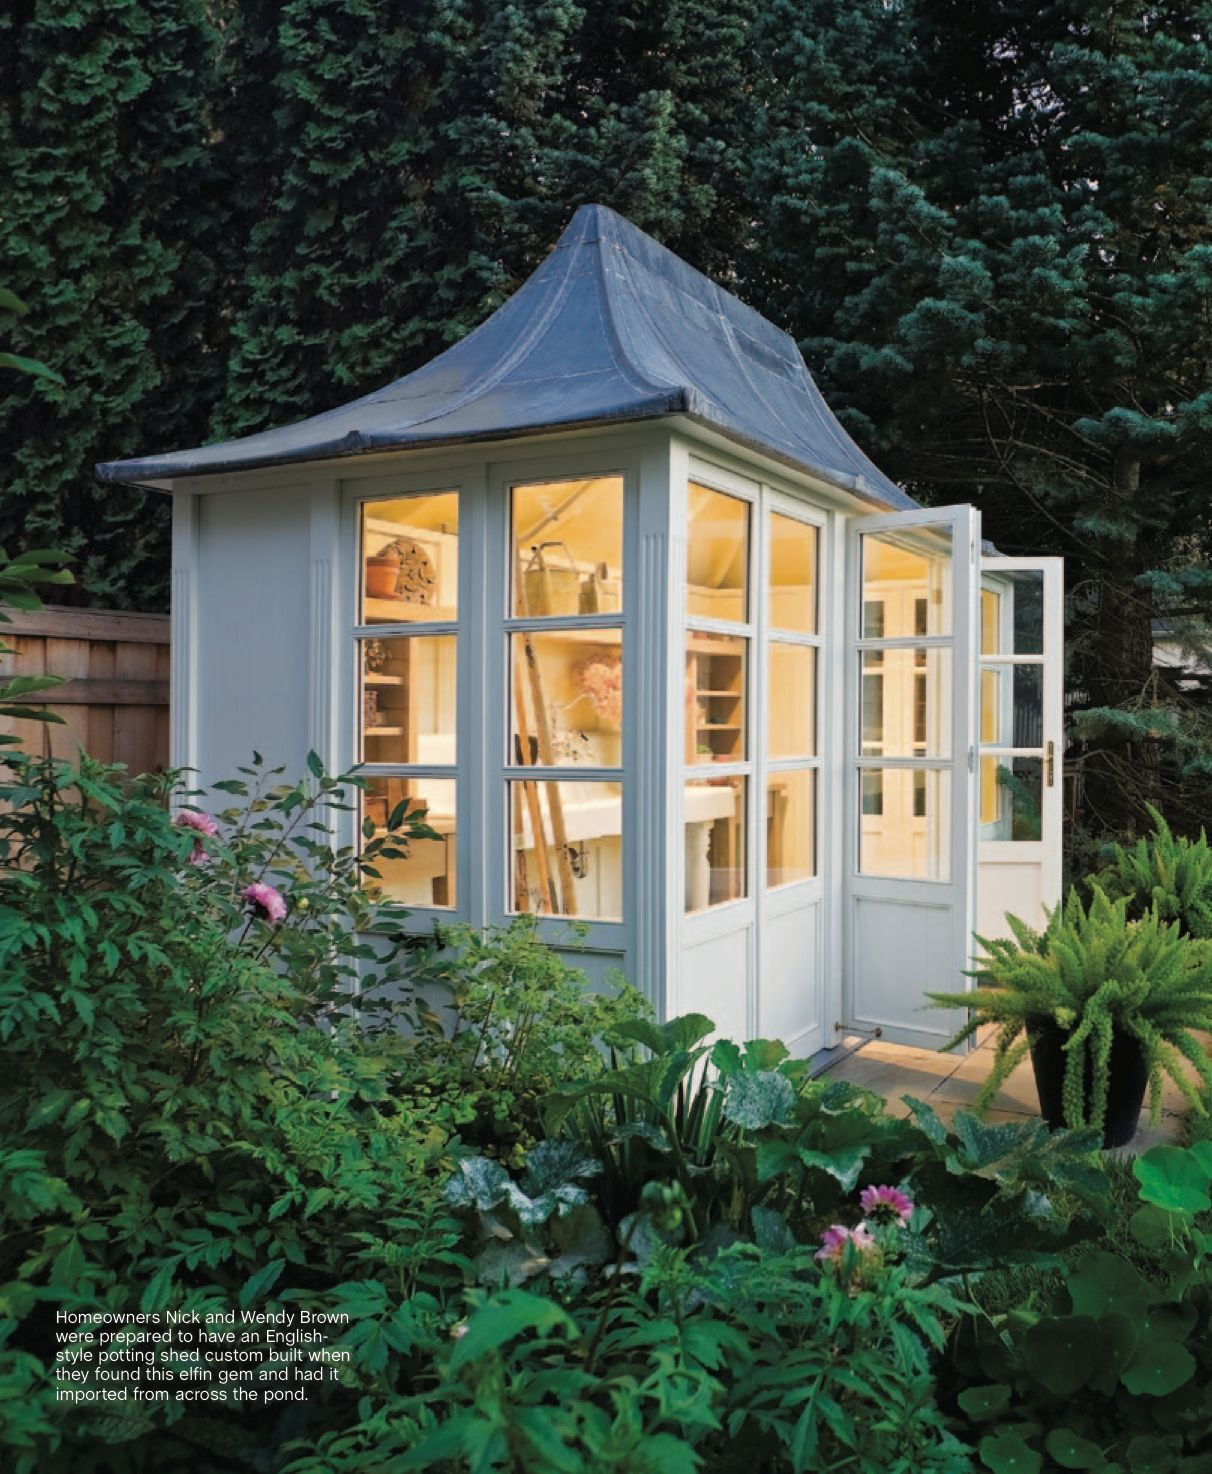 Modern garden house  English style potting shed by HSP Garden Buildings  white